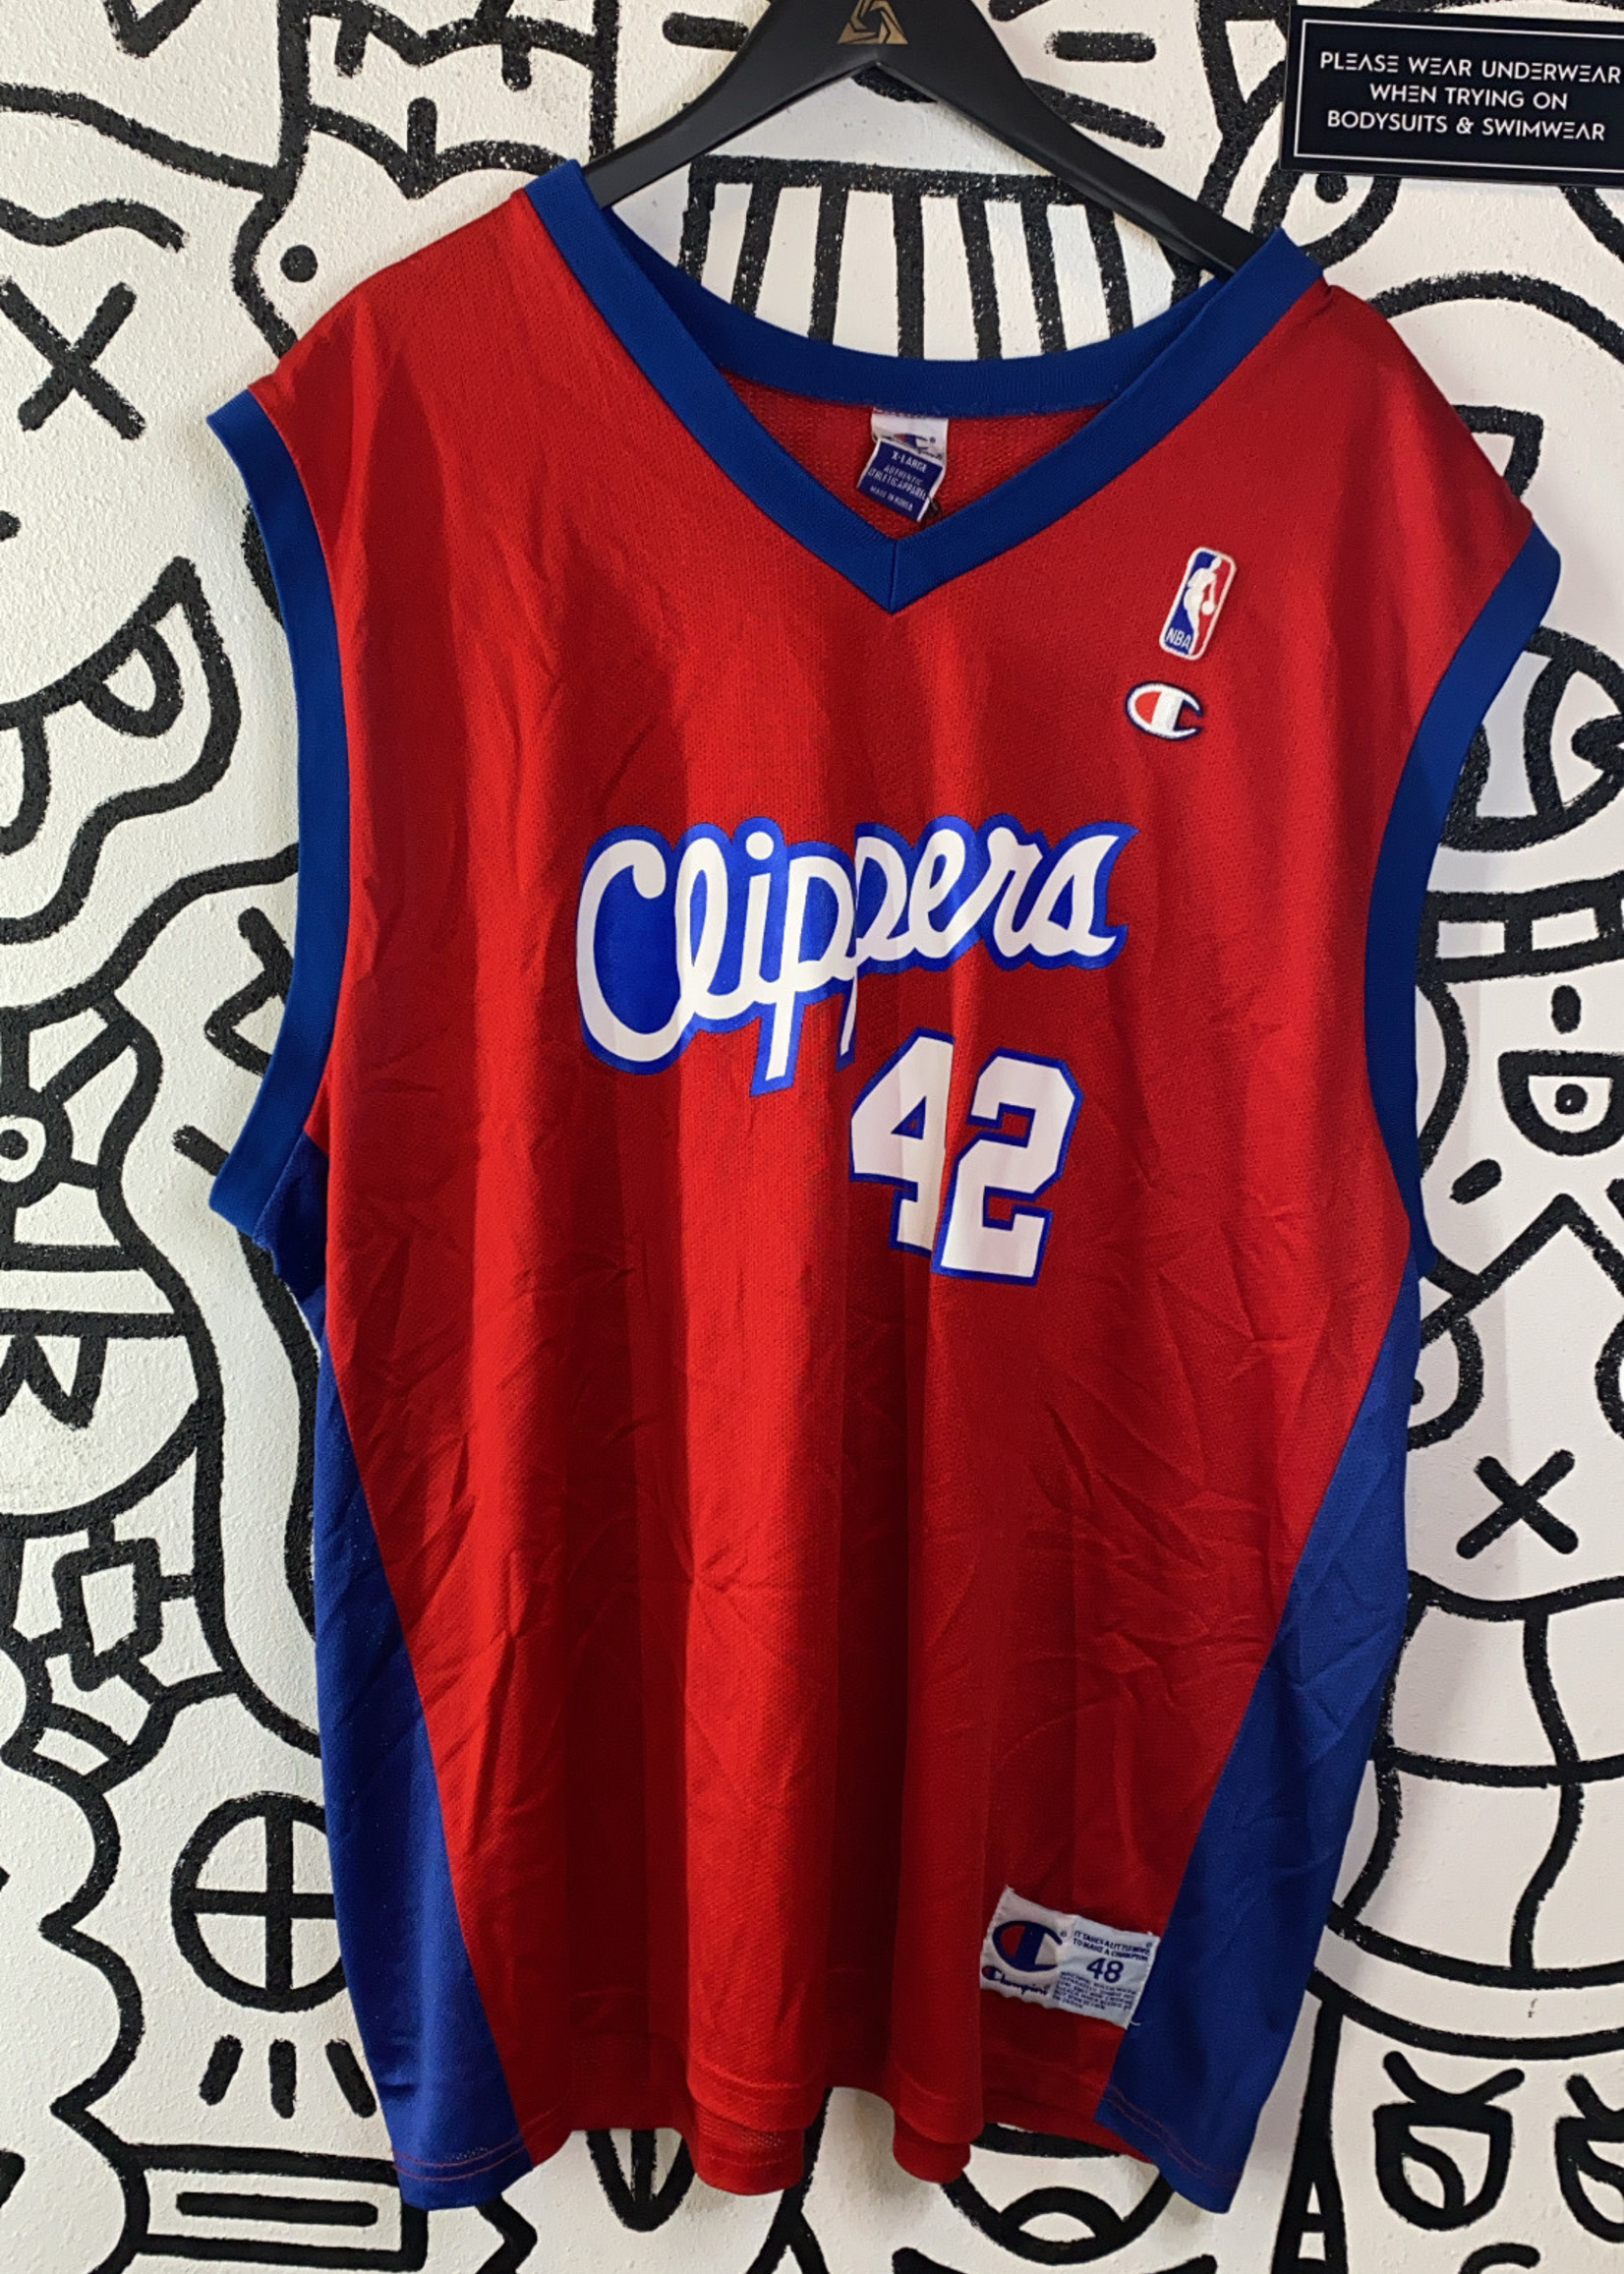 Champion Authentic Clippers Elton Brand Jersey XL